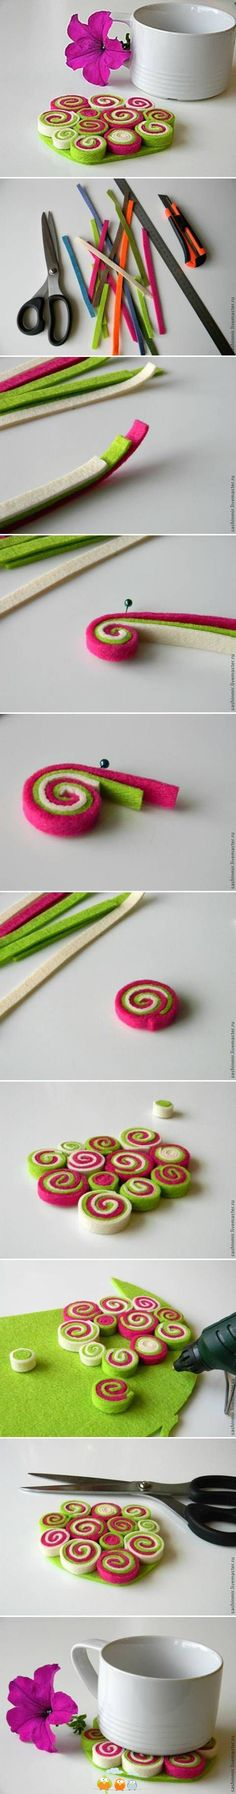 'Licorice allsorts': from Repiny - Most inspiring pictures and photos!